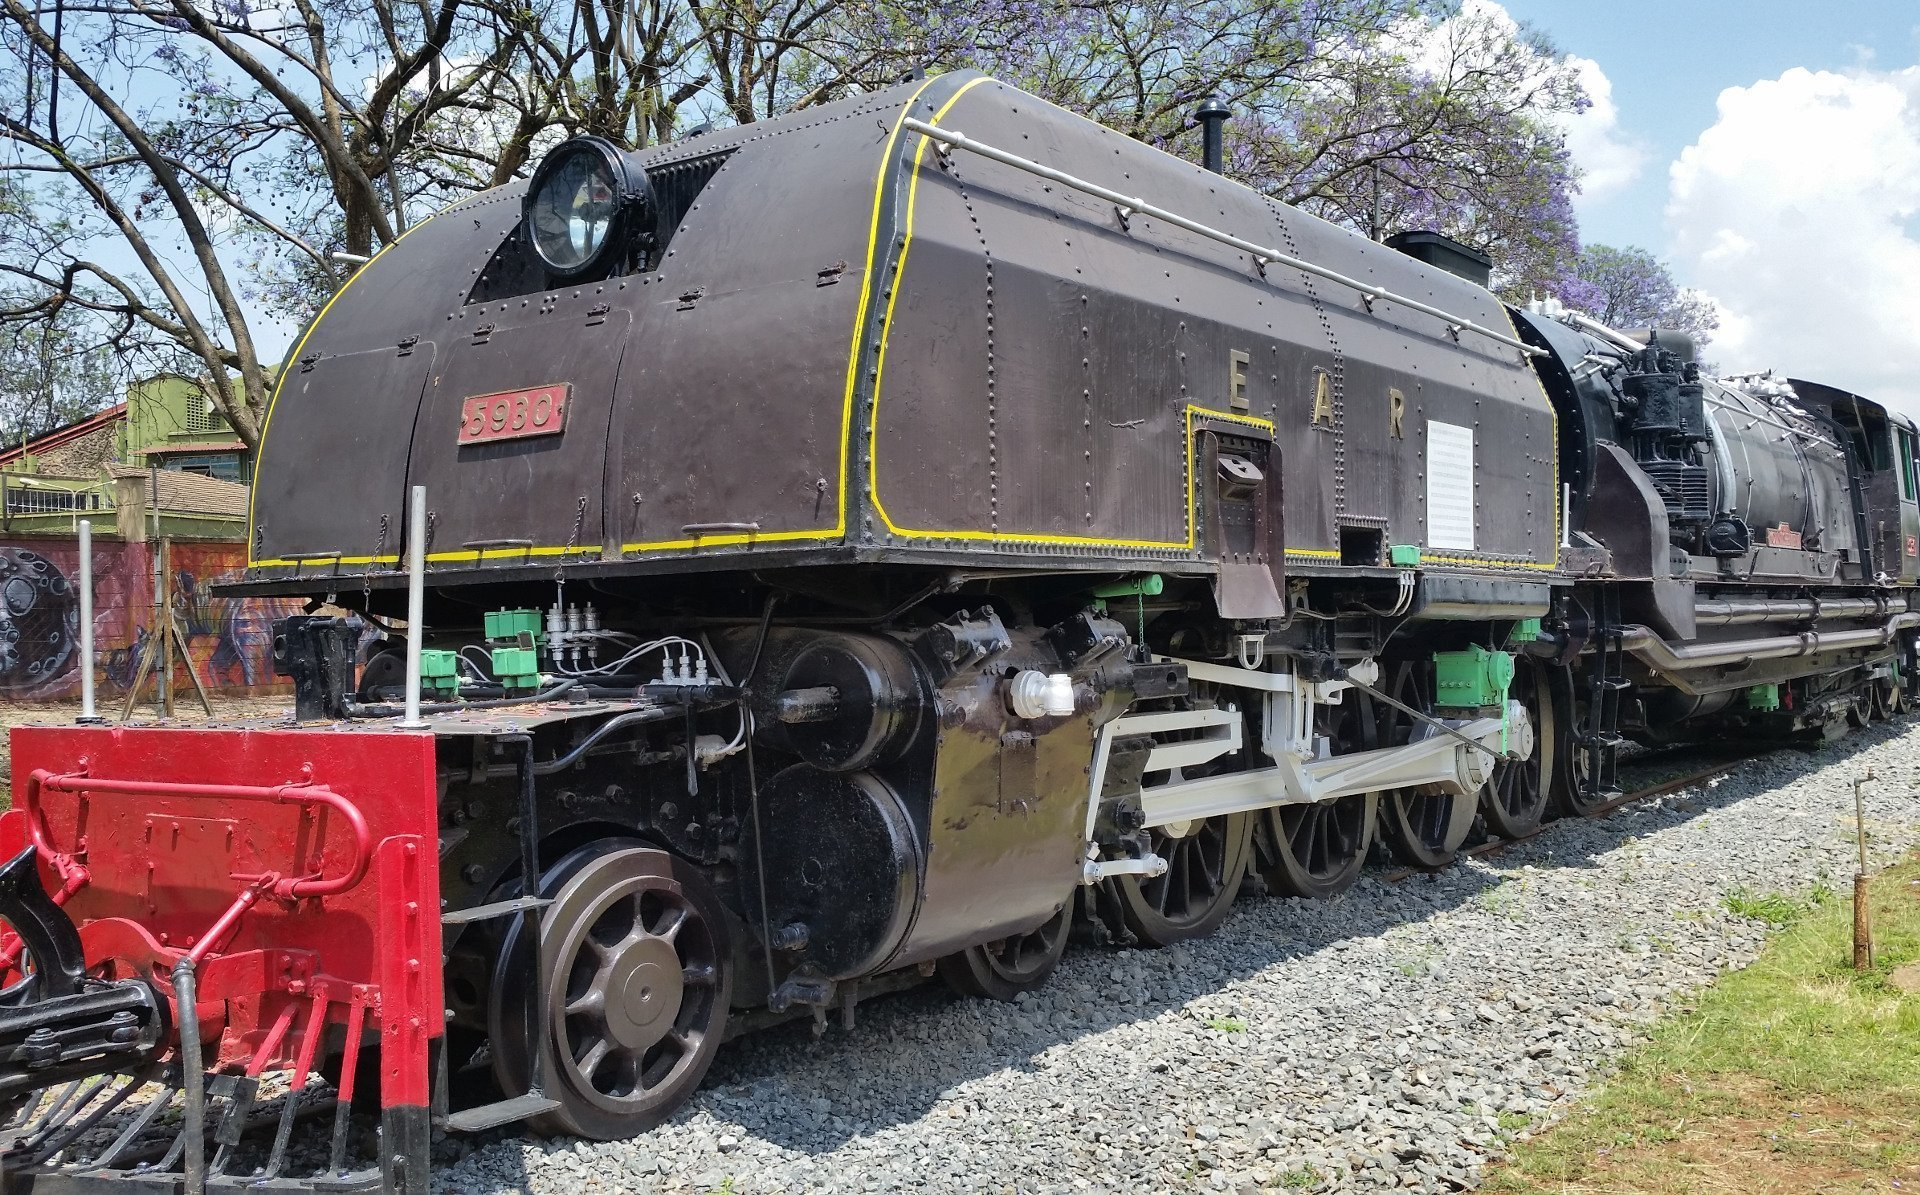 Popularly known as the Mighty Garratt, this 59 Class locomotive was the biggest, heaviest and most powerful steam locomotive ever made on 1 M gauge. It was specifically made for Kenya and introduced in 1955 after WWII to haul large freight lying at the port of Mombasa. These class of trains were named after mountains because of their massive nature. This one was named after Mount Shengena in Tanzania.